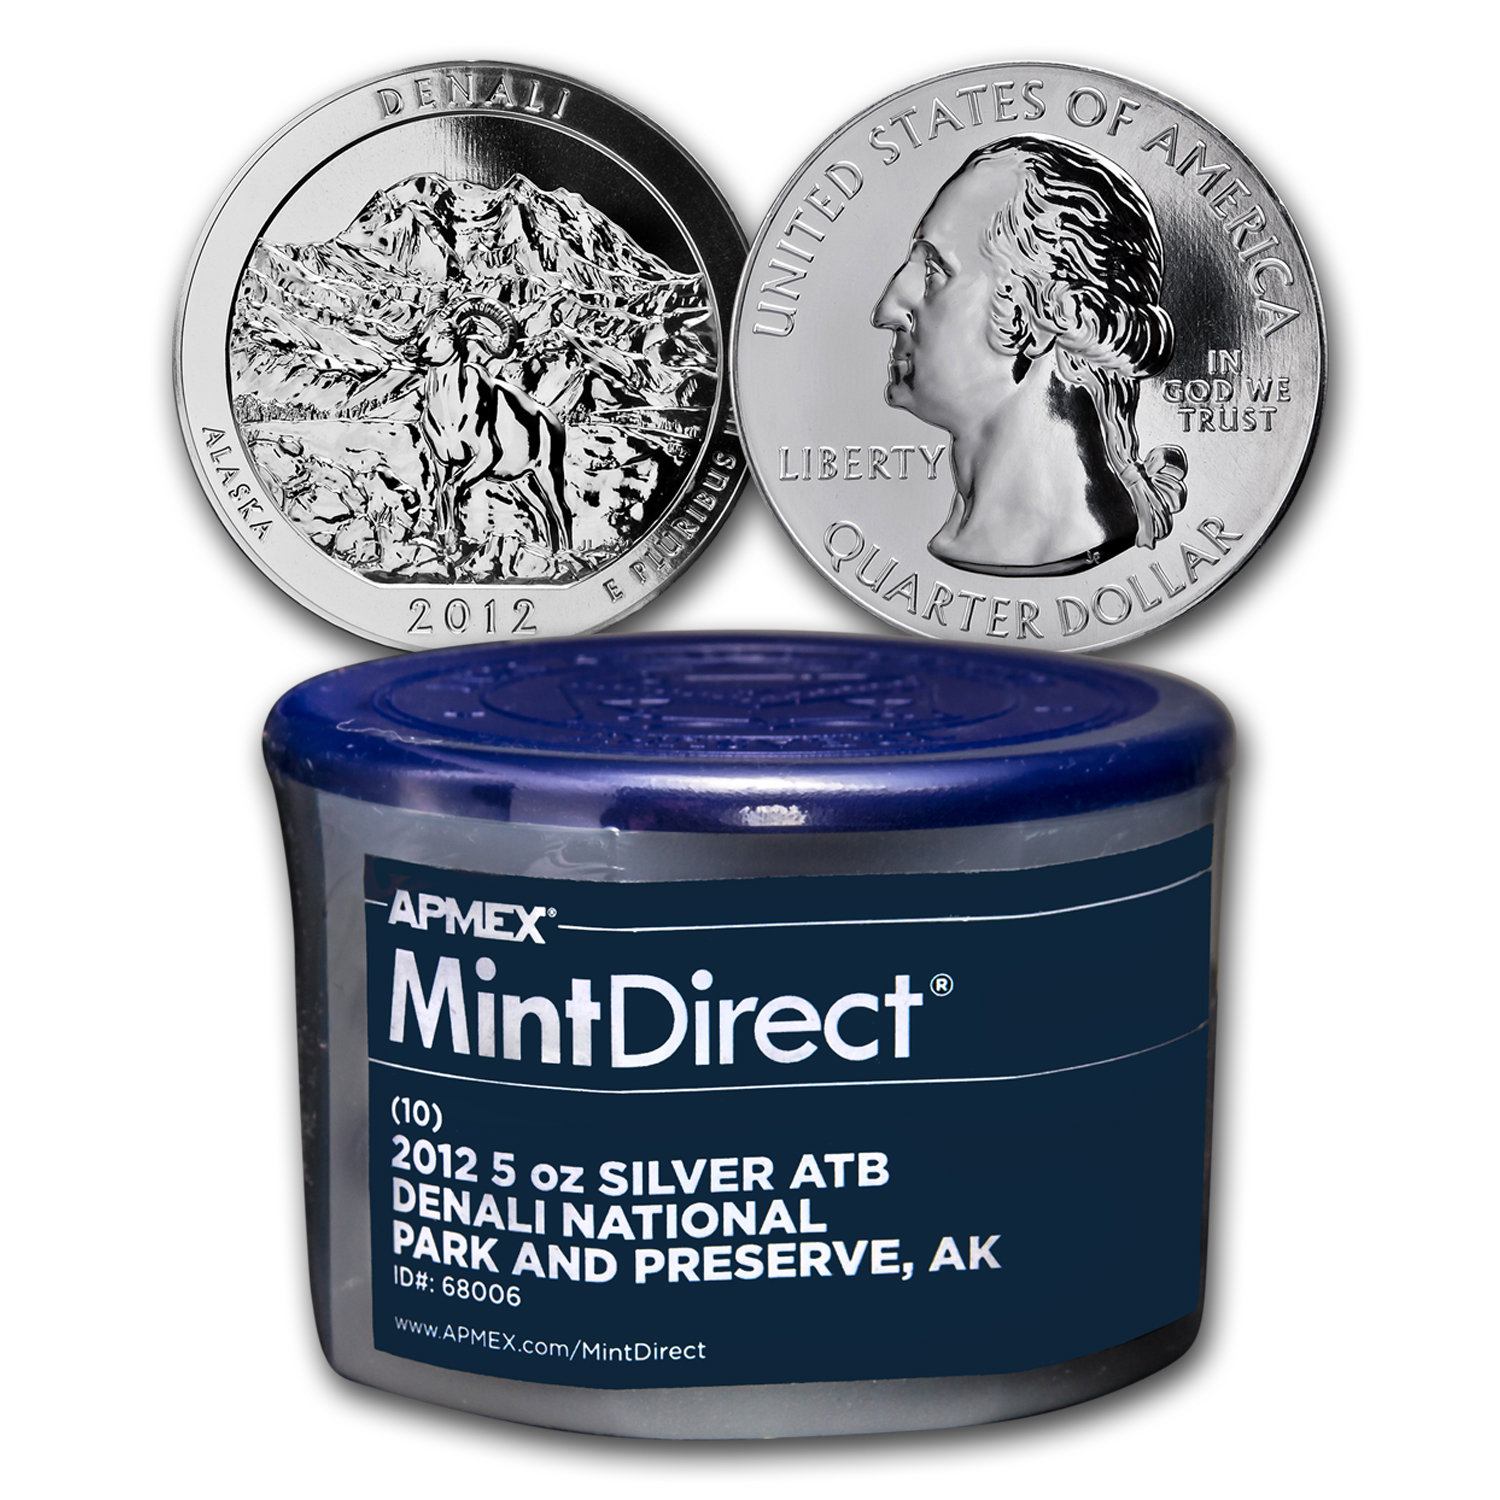 2012 5 oz Silver ATB Denali (10-Coin MintDirect® Tube)